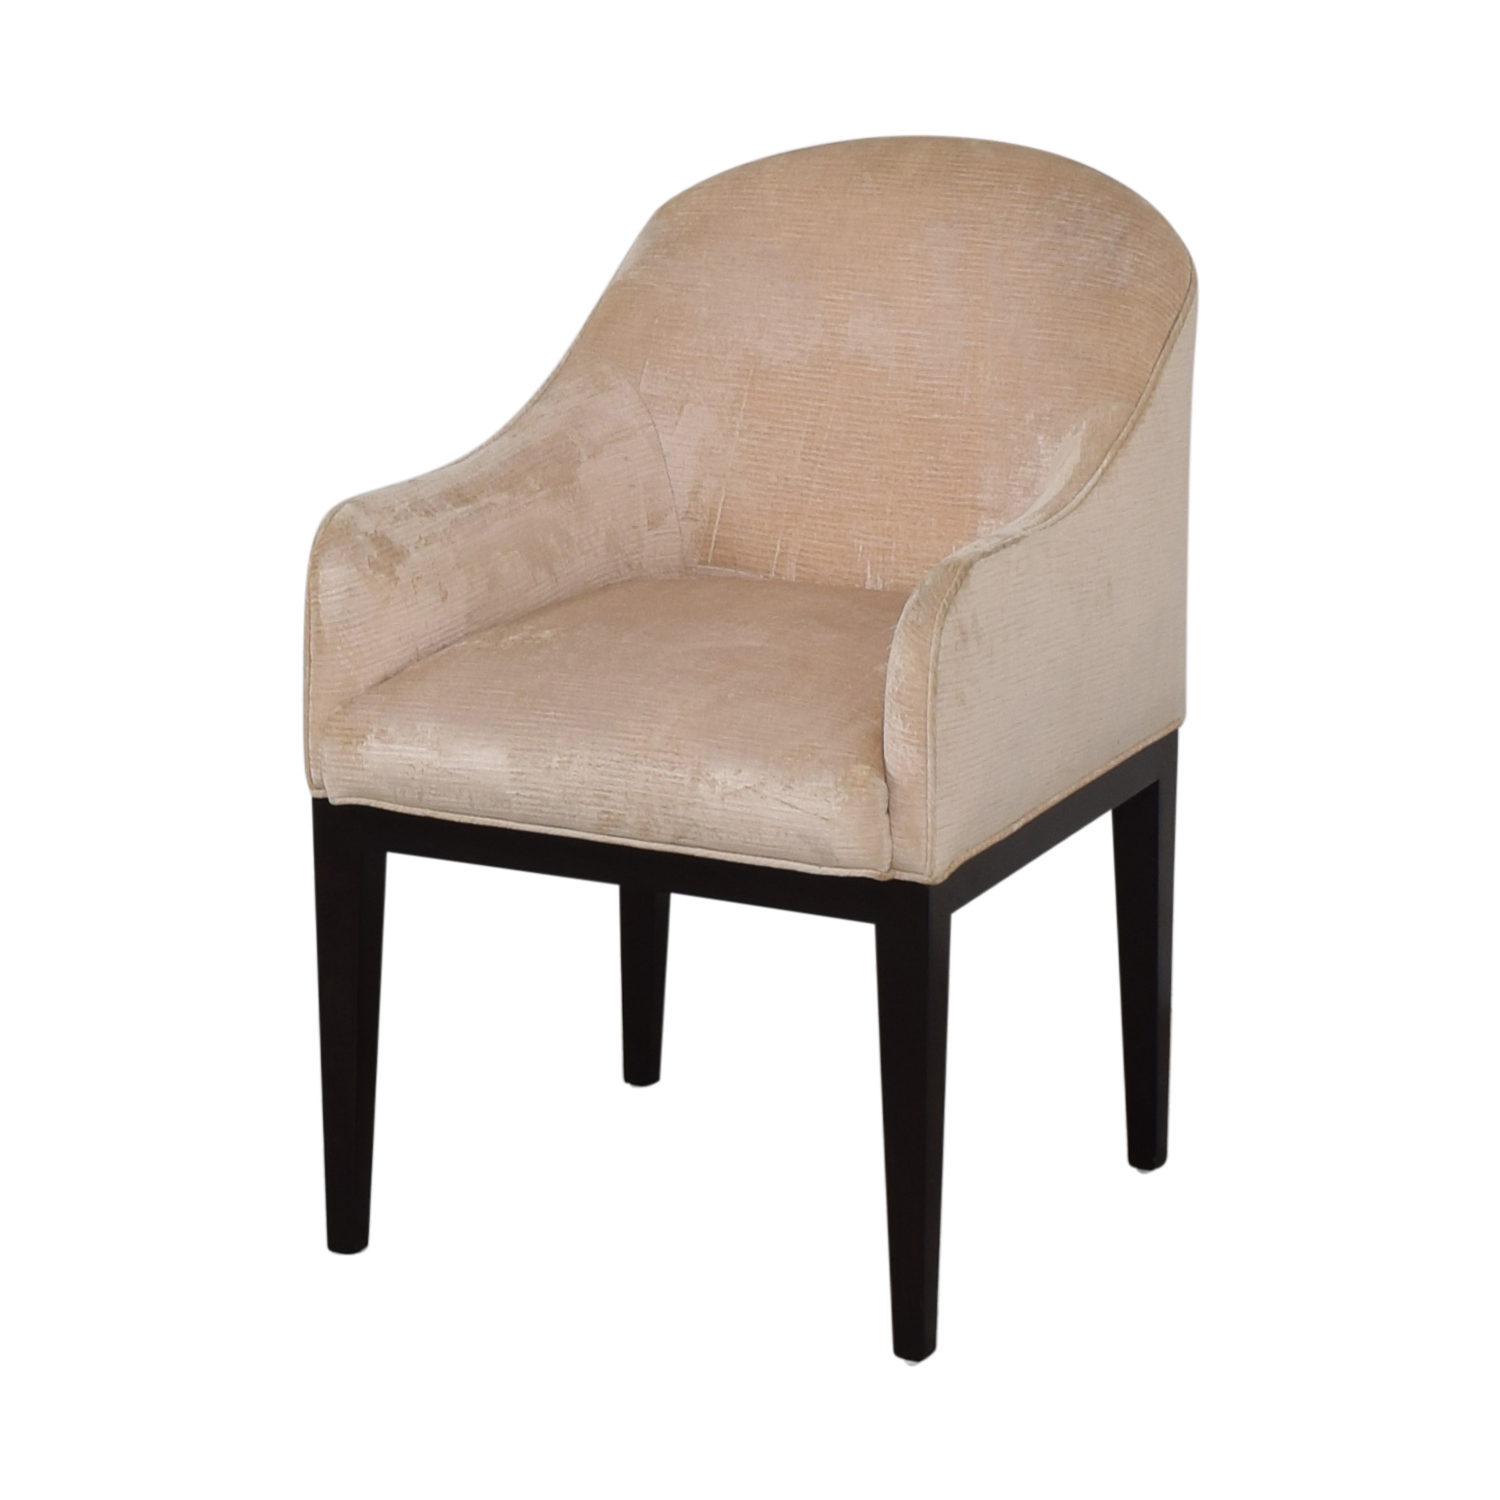 Furniture Masters Furniture Masters Cream Accent Armchair second hand